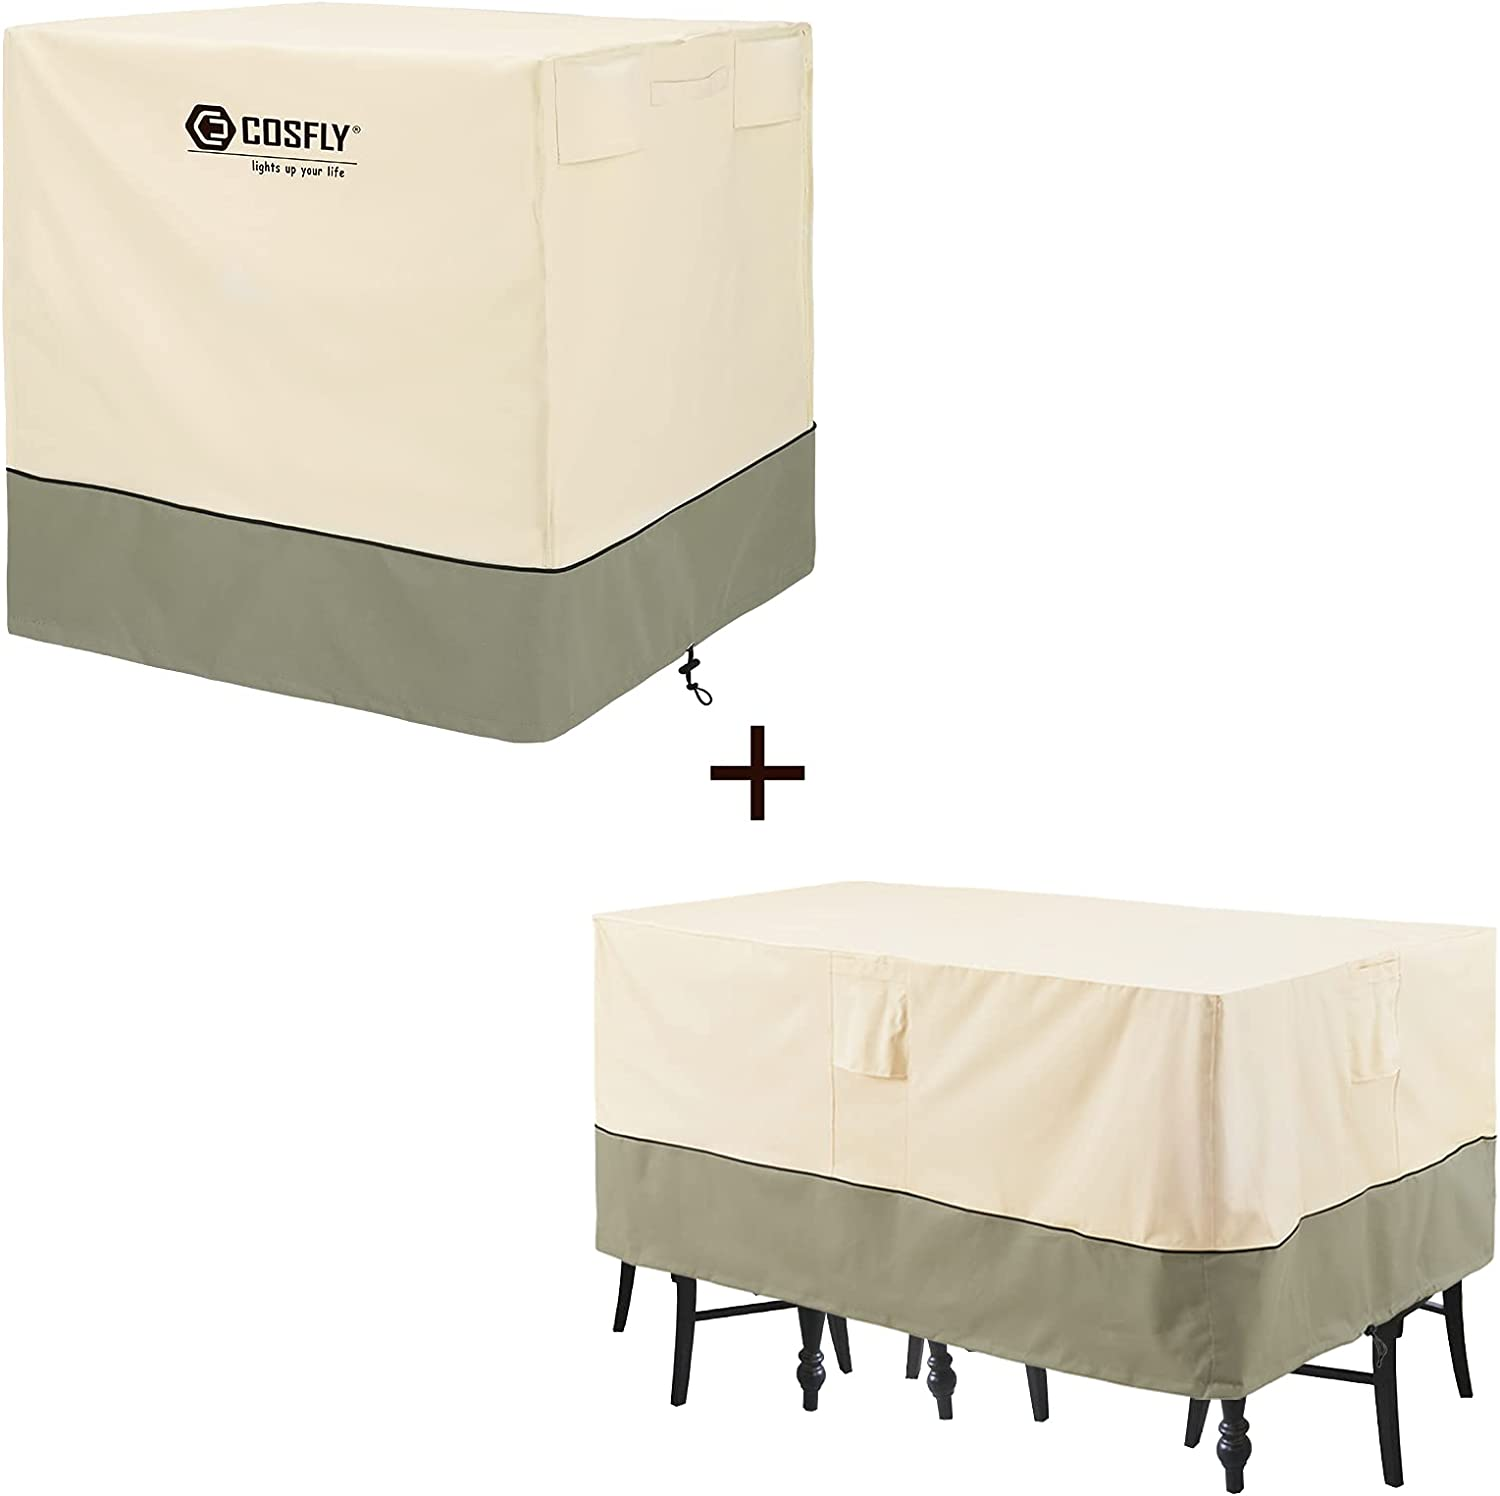 COSFLY Outdoor Air Conditioner Covers Waterproof Finally resale start Patio and OFFicial mail order Furni